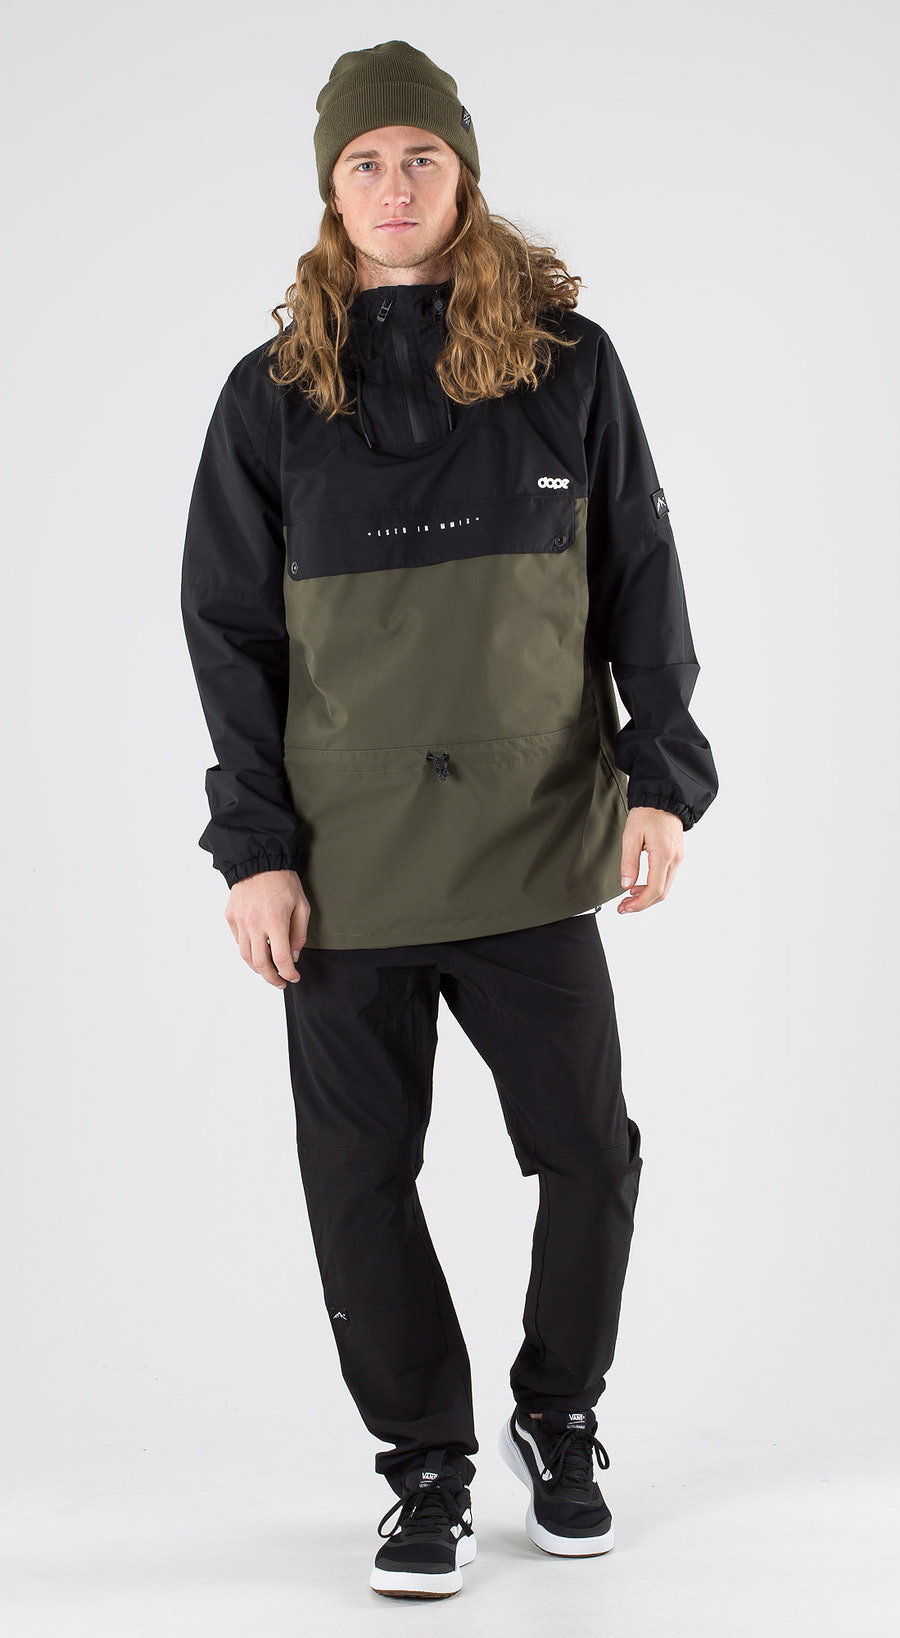 Dope Hiker Black Green Outfit Multi